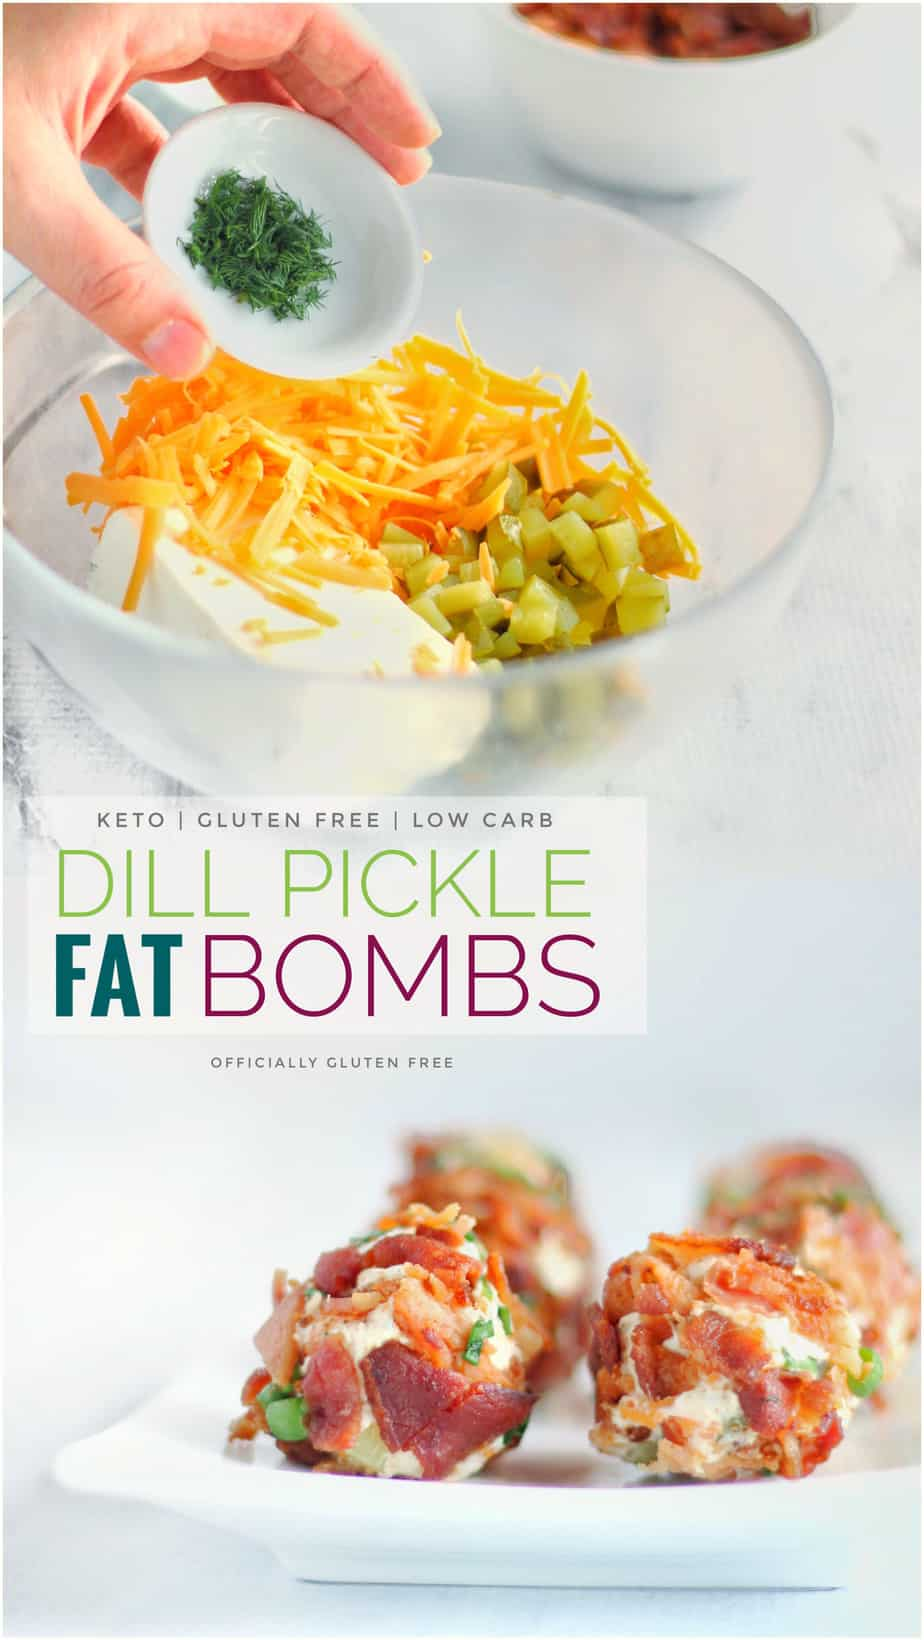 Dill Pickle Fat Bombs